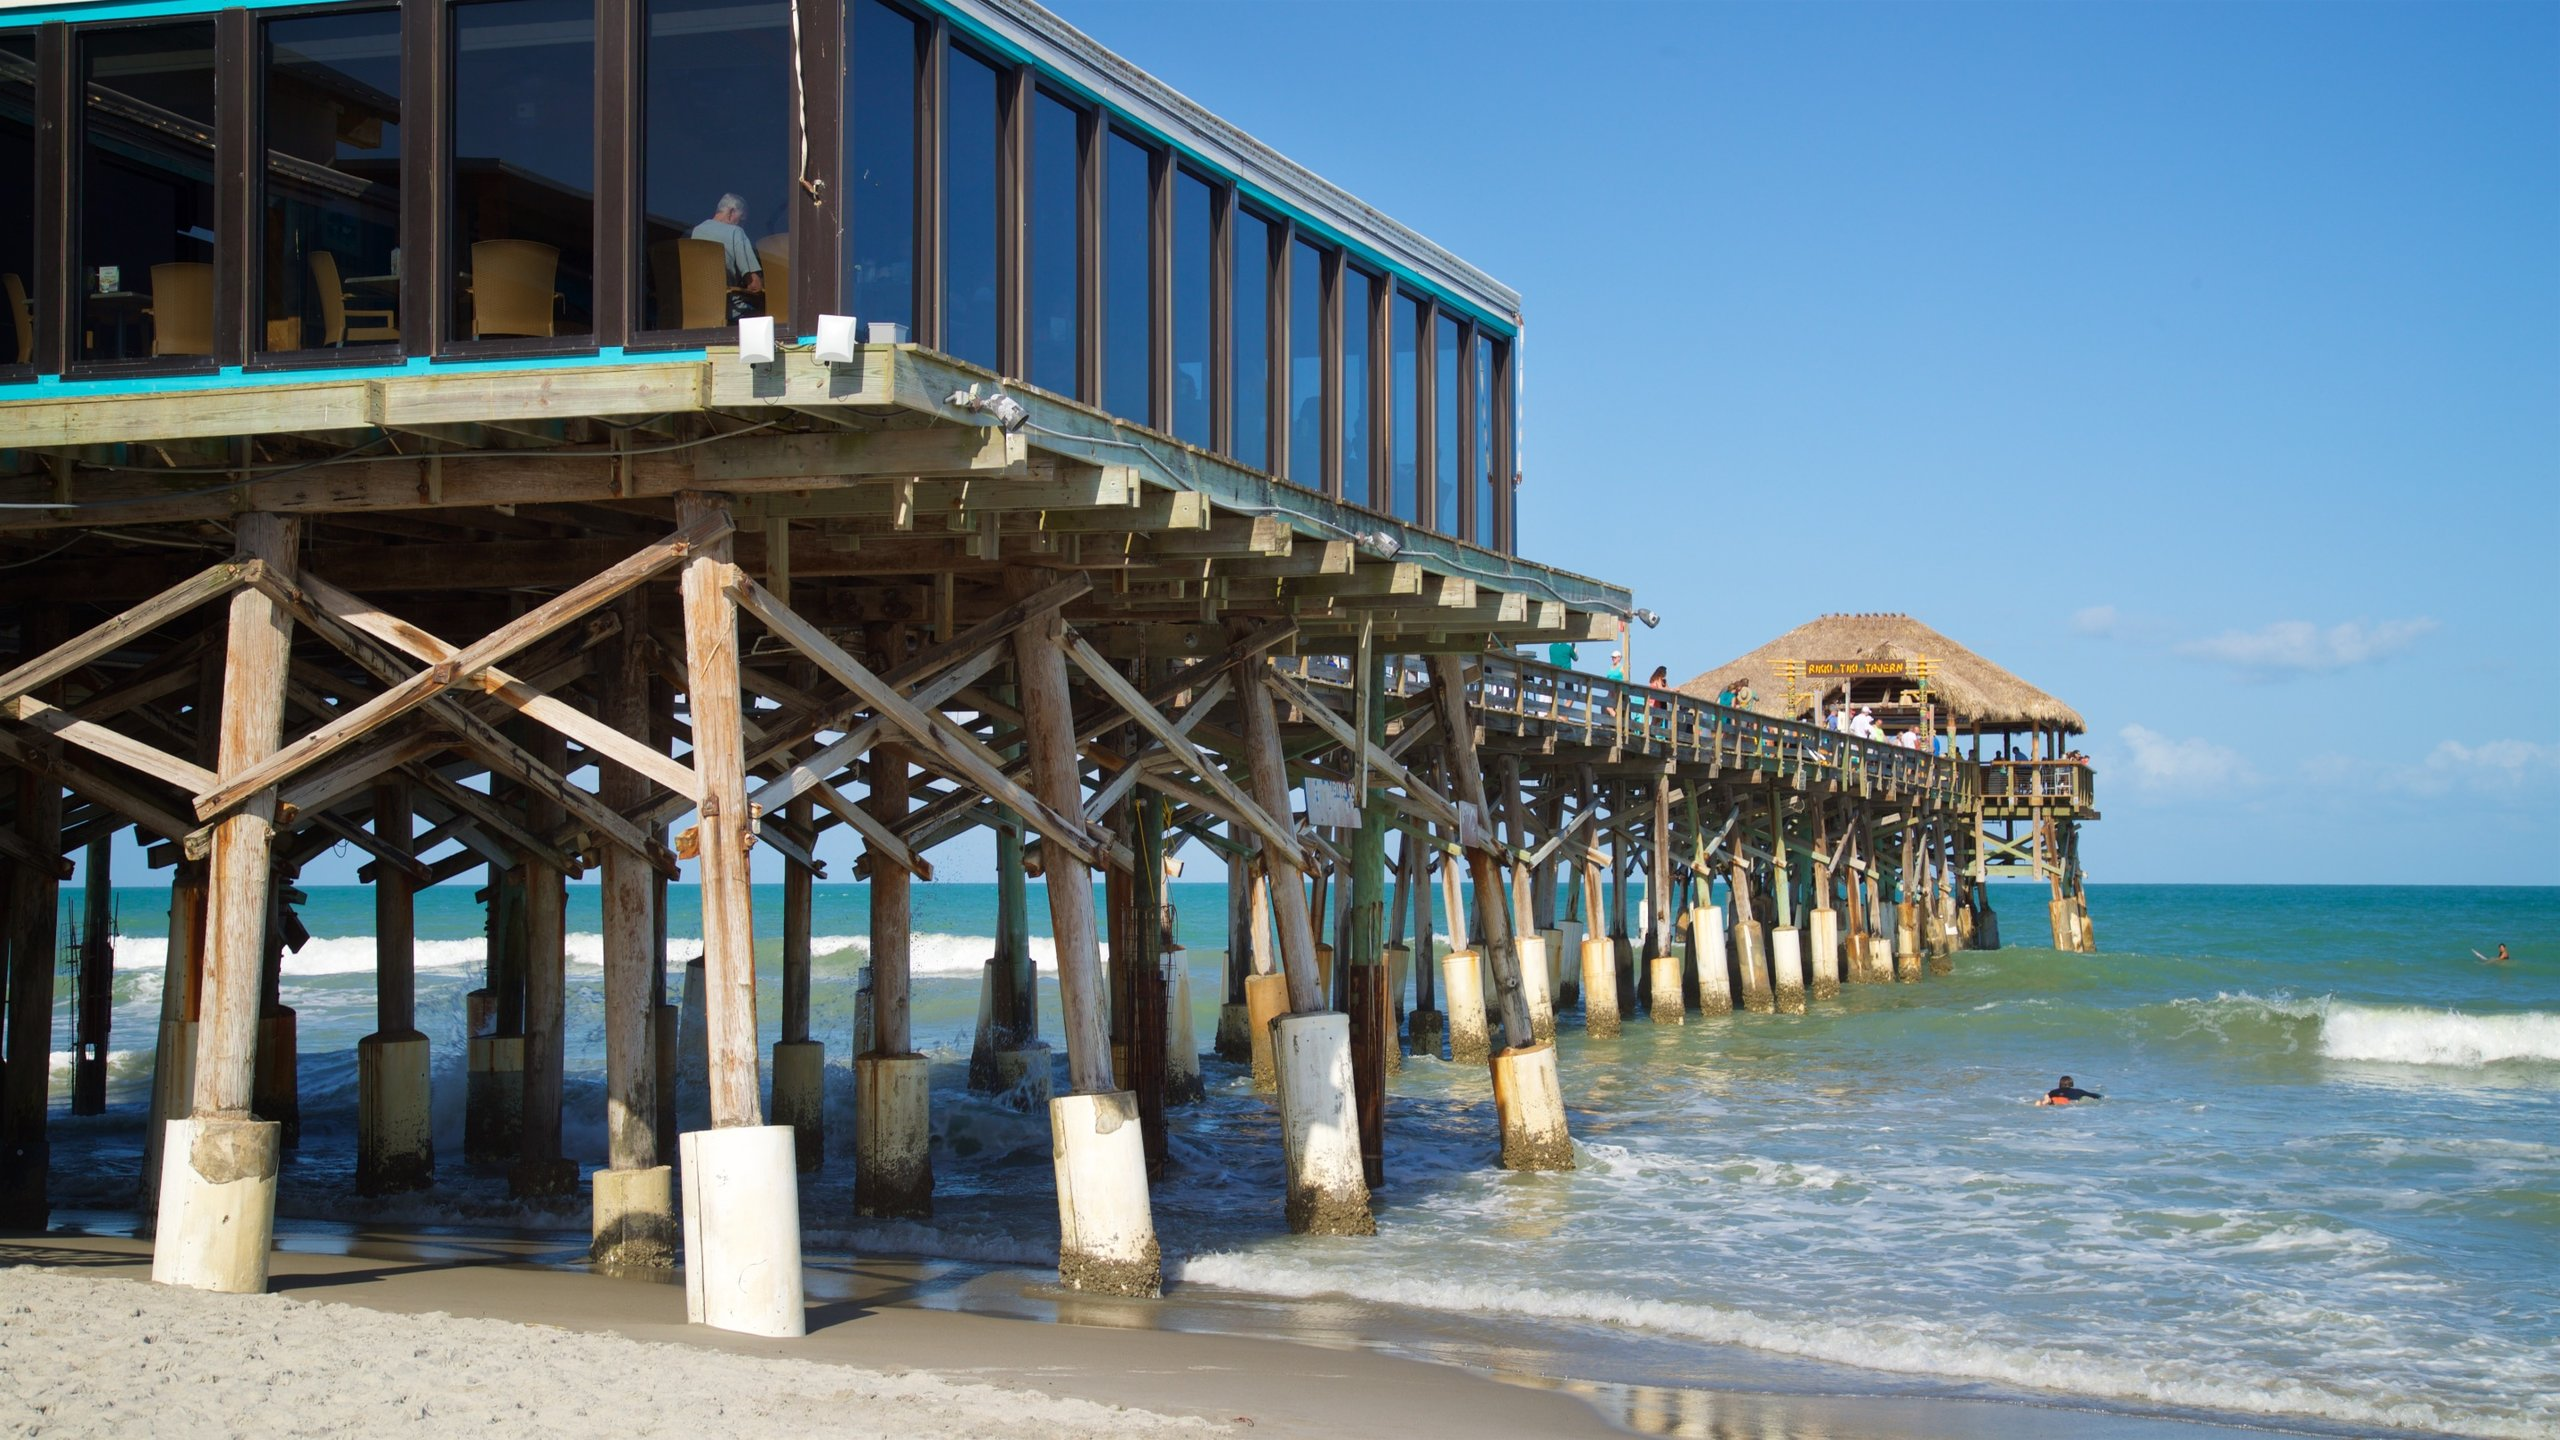 Top 10 Hotels Closest to Cocoa Beach Pier in Avon By The Sea ... Cocoa Beach Hotels Map on longboat key hotel map, klamath falls hotel map, daytona hotel map, mitchell hotel map, albany hotel map, pensacola hotel map, overland park hotel map, ann arbor hotel map, jacksonville hotel map, georgetown hotel map, wichita hotel map, orange county convention center hotel map, punta gorda hotel map, kent hotel map, boca raton hotel map, gulfport hotel map, geneva hotel map, kalamazoo hotel map, edgewater hotel map, davenport hotel map,